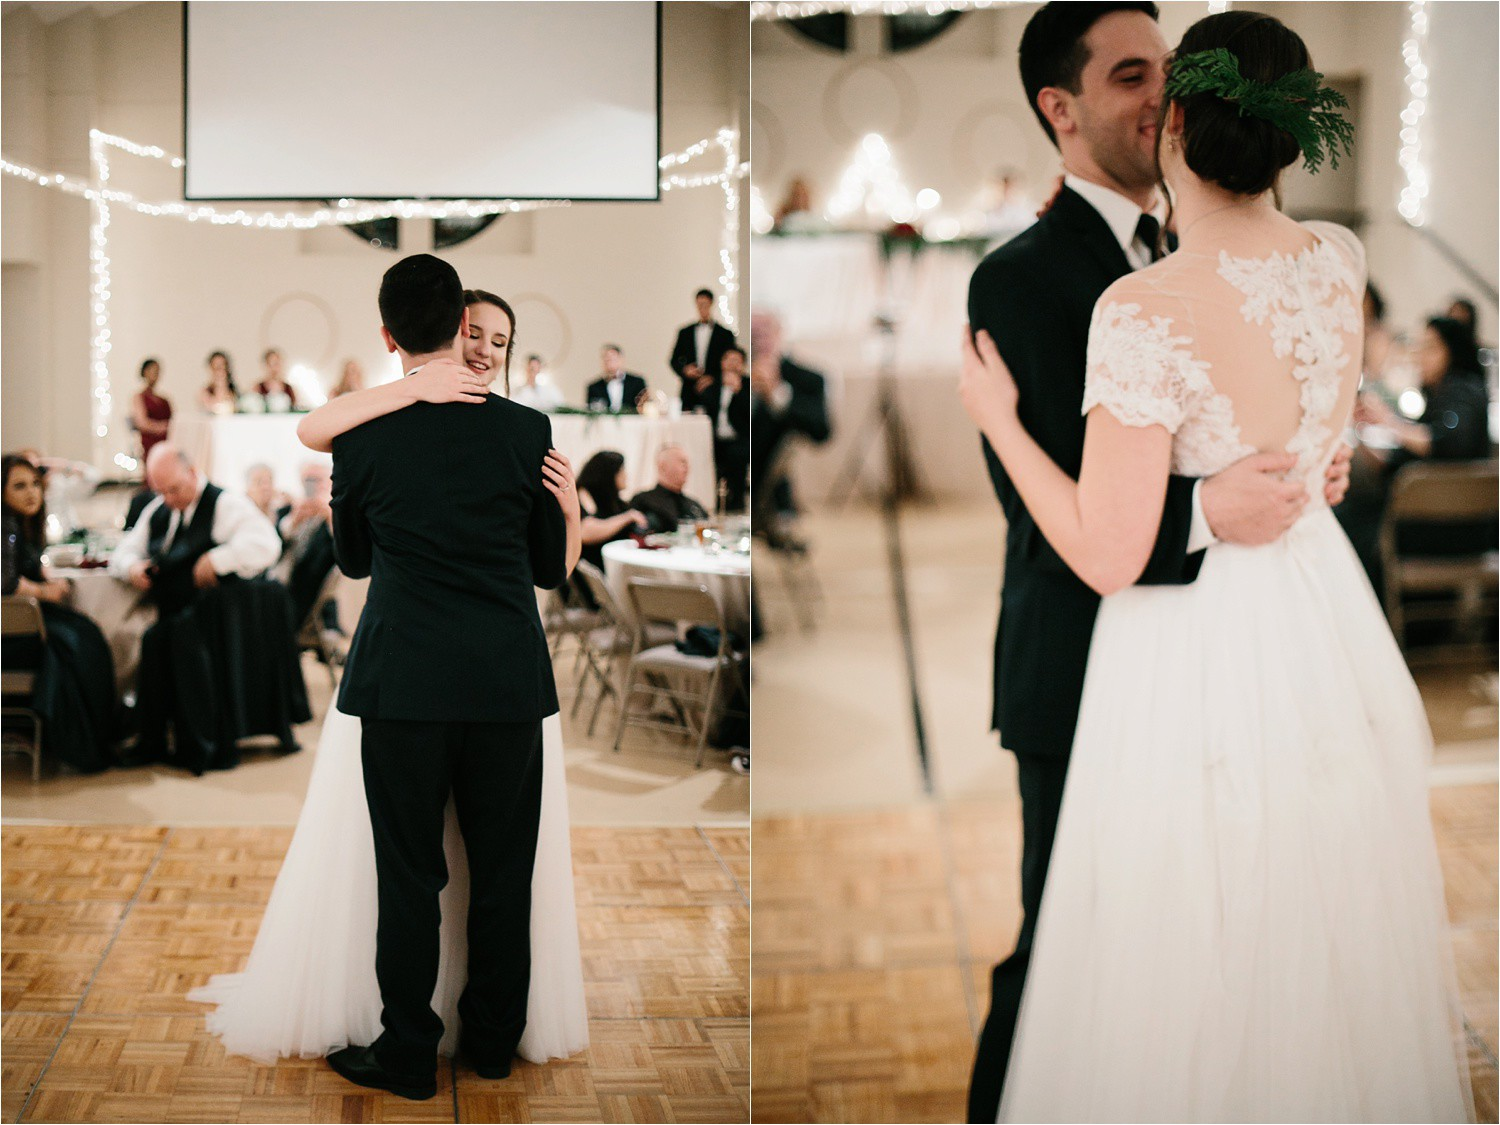 Alaina + Josh __ a wintertime wedding in Houston, TX with Christmas accents and a BHLDN dress by North Texas Wedding Photographer Rachel Meagan Photography _ 66